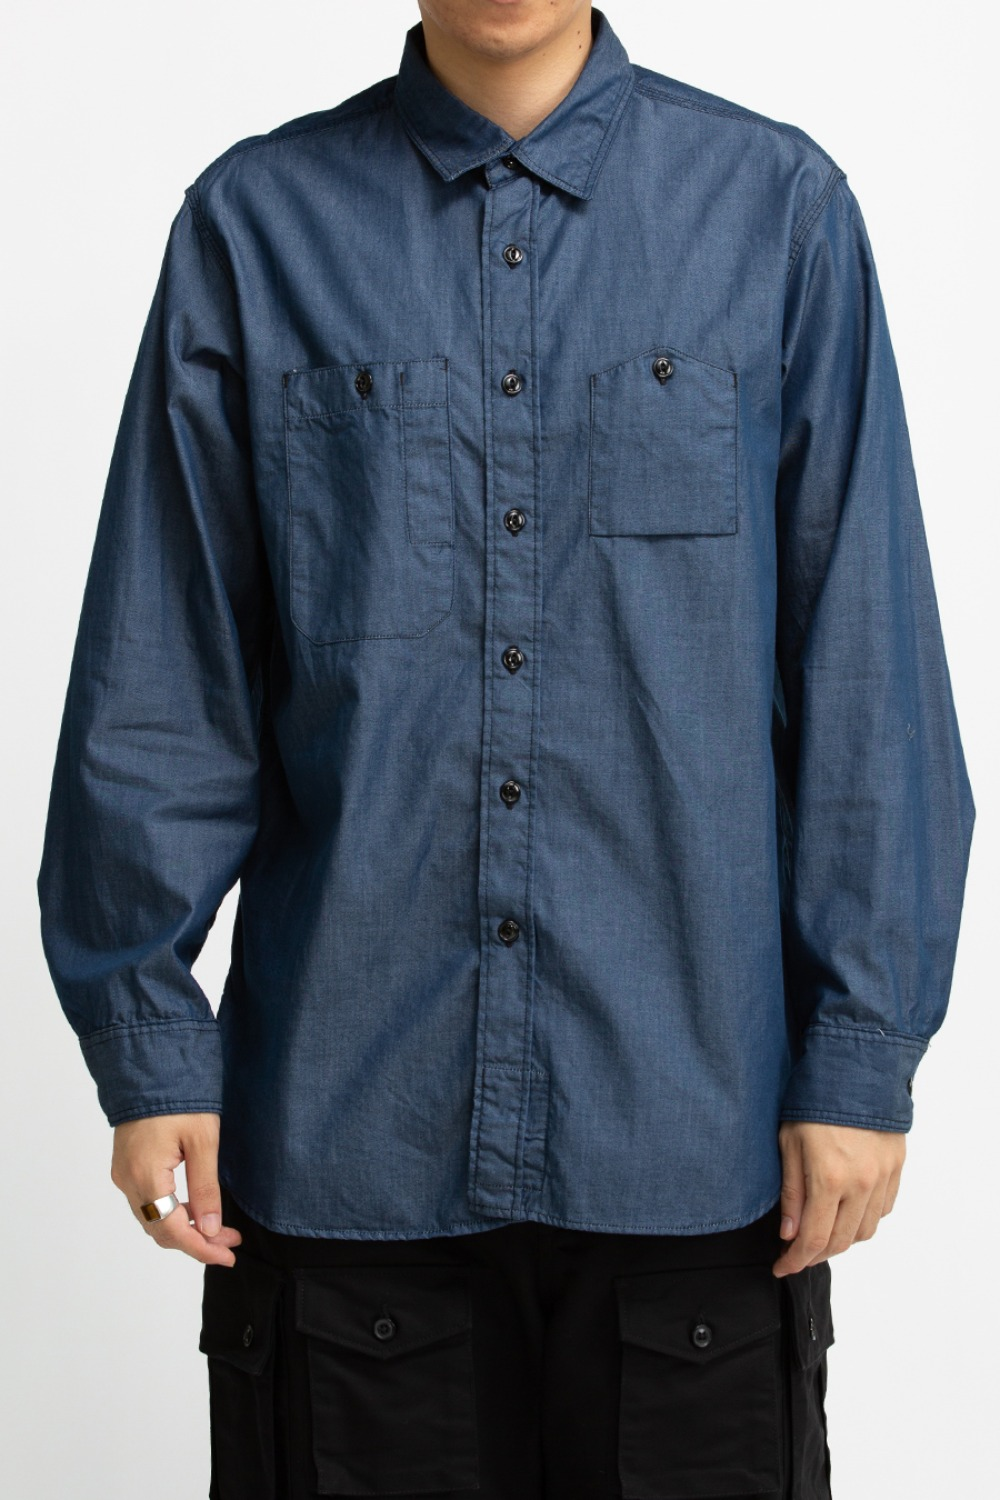 WORK SHIRT DARK BLUE LIGHT WEIGHT DE